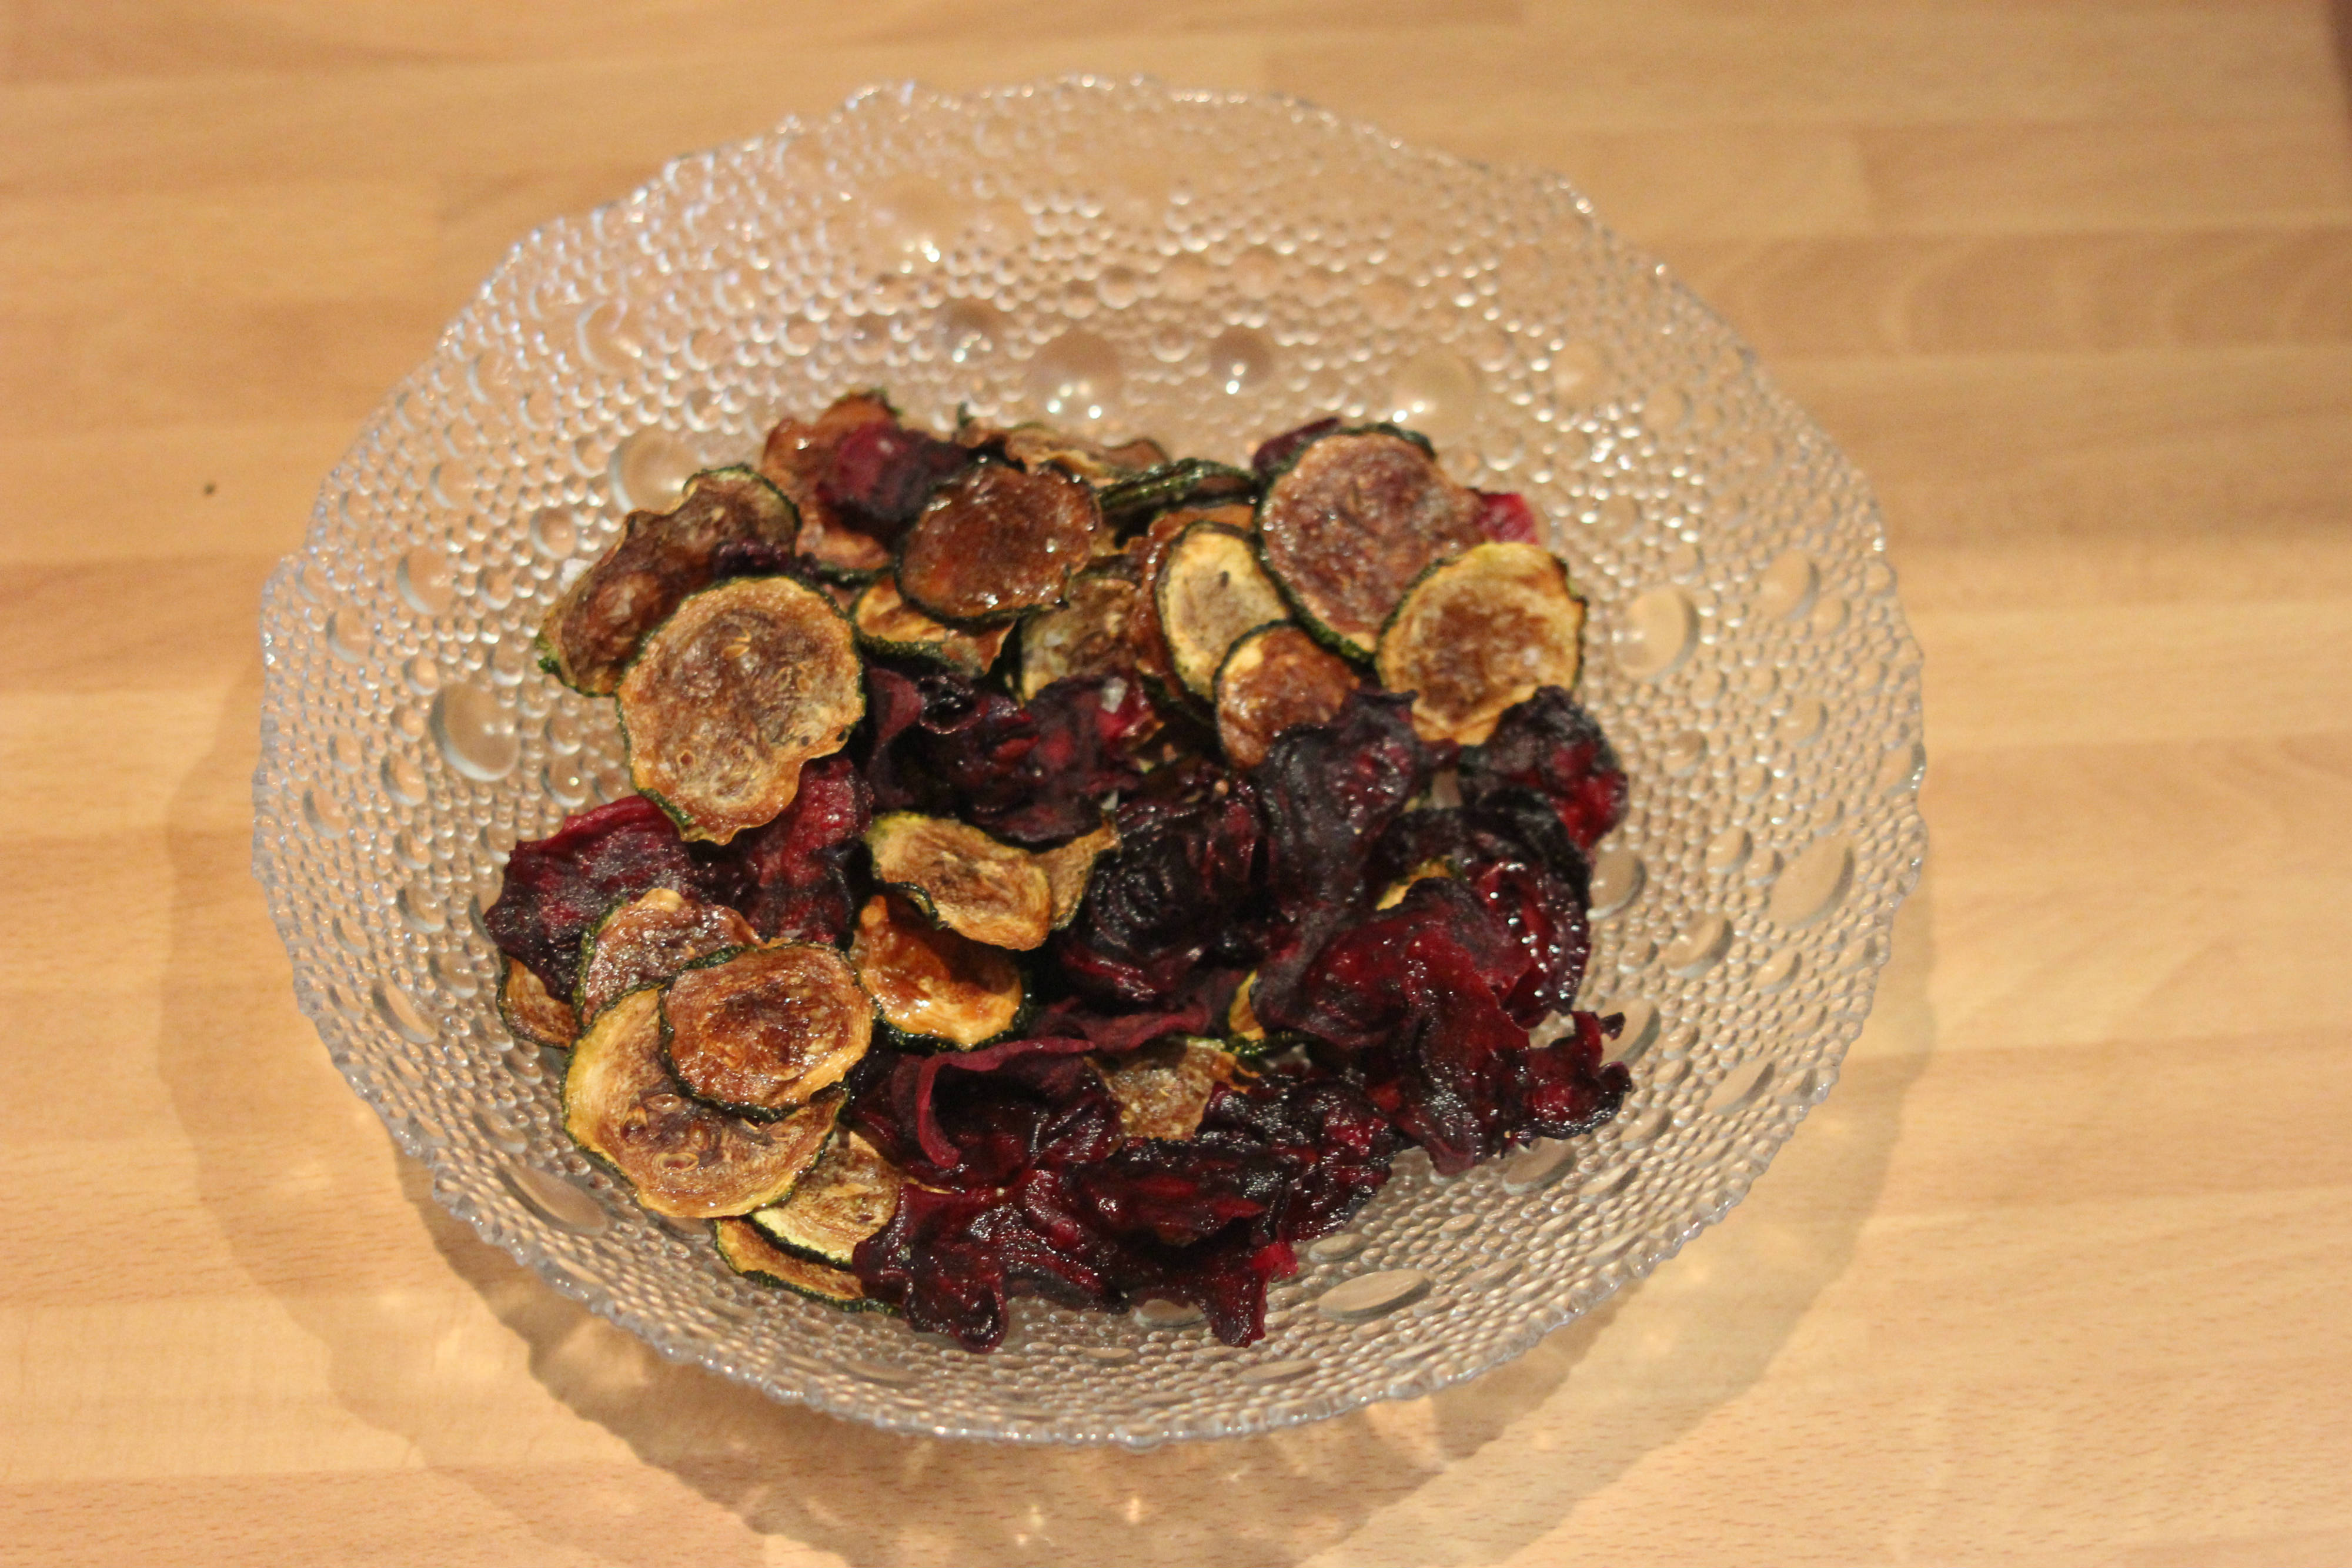 Courgette and Beetroot Crisps 5